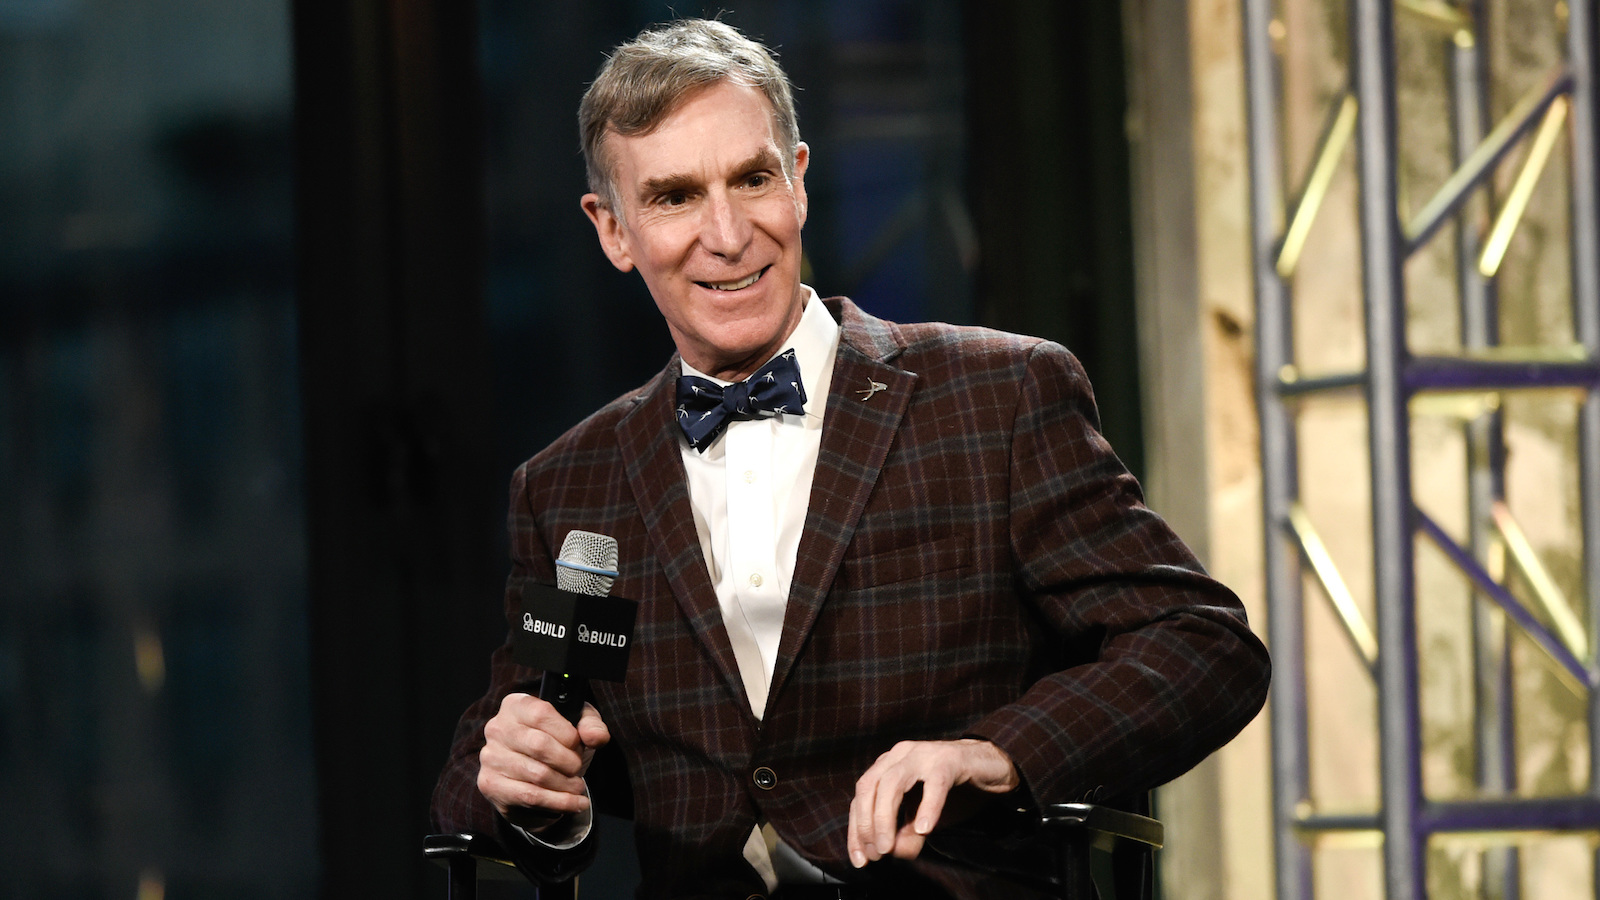 """FILE - In this Dec. 17, 2015 file photo, Bill Nye, the Science Guy, participates in AOL's BUILD Speaker Series to discuss his new book, """"Unstoppable: Harnessing Science To Change The World"""", at AOL Studios, in New York. Nye is going to be a Netflix guy. The streaming network announced plans Wednesday, Aug. 31, 2016, to launch a series, """"Bill Nye Saves the World,"""" hosted by the famed scientist, author and TV personality. (Photo by Evan Agostini/Invision/AP, File)"""